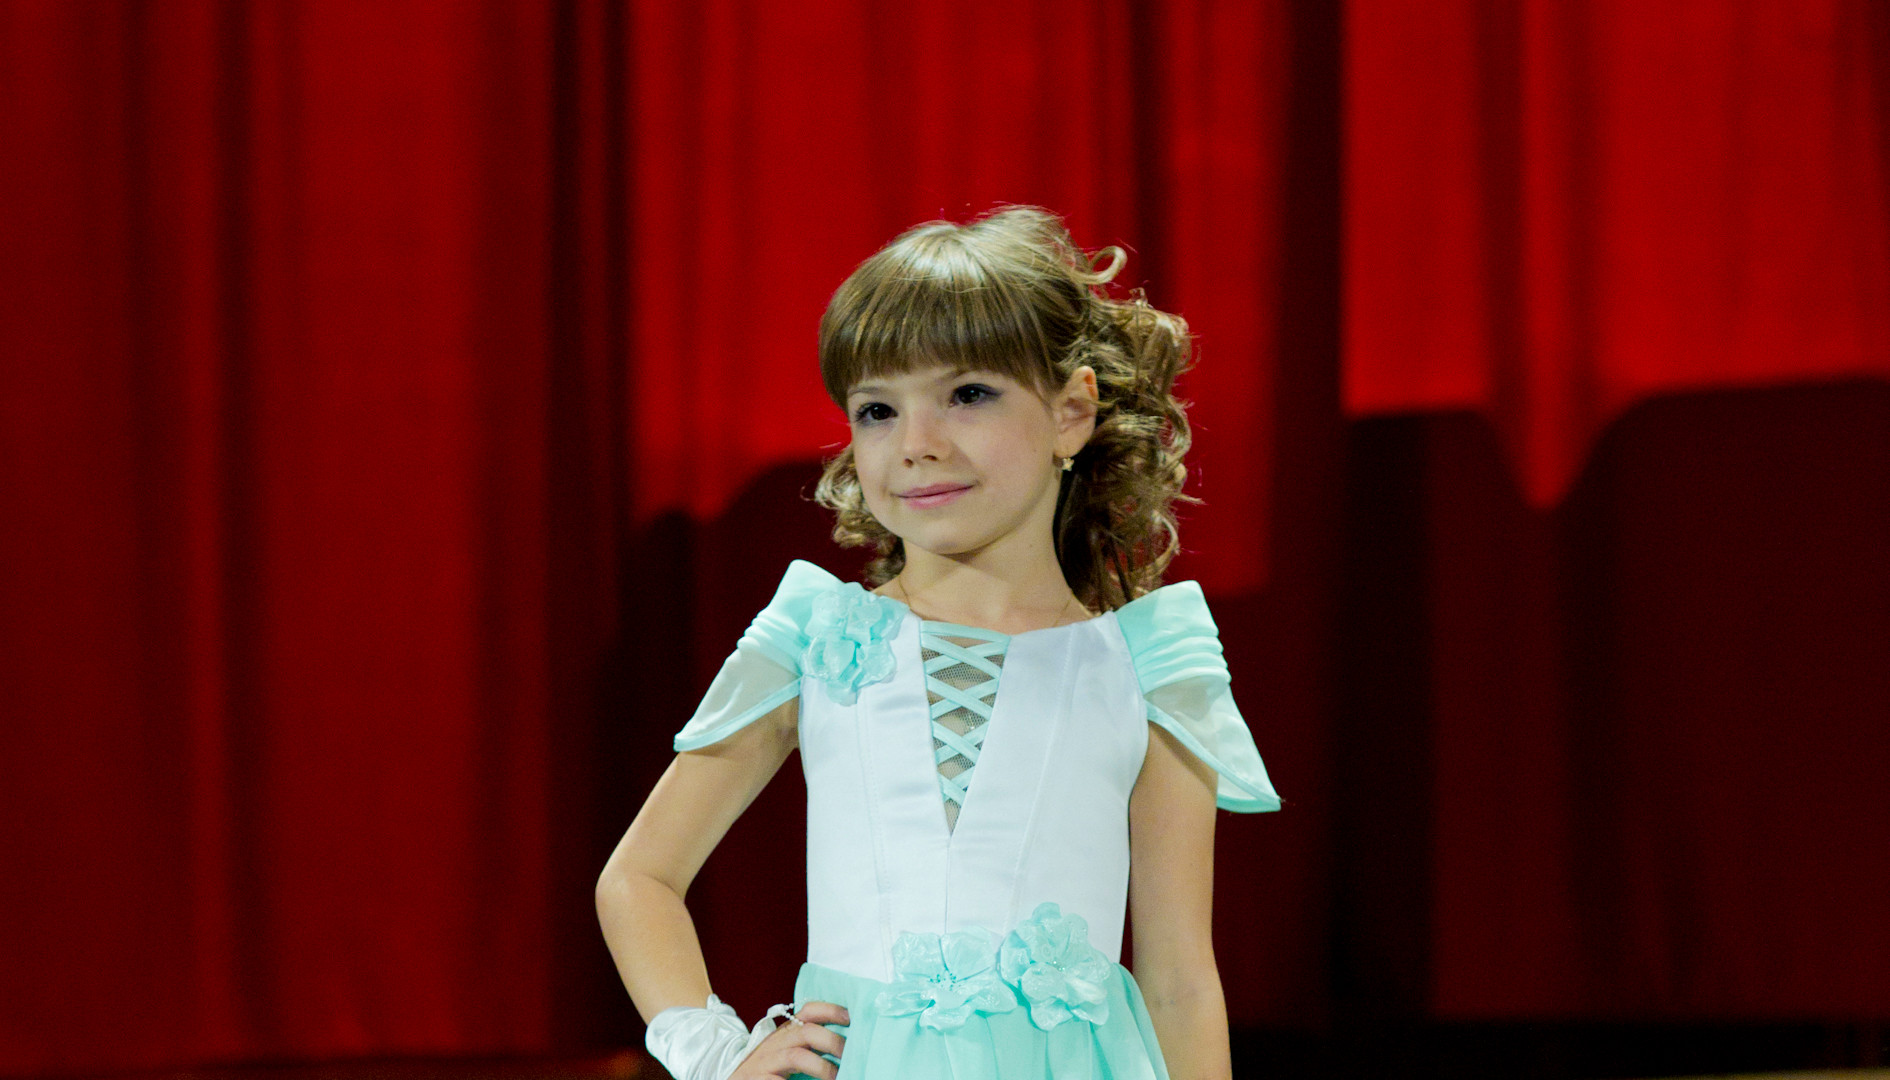 Mini-miss-Vincent Bordignon-146.jpg